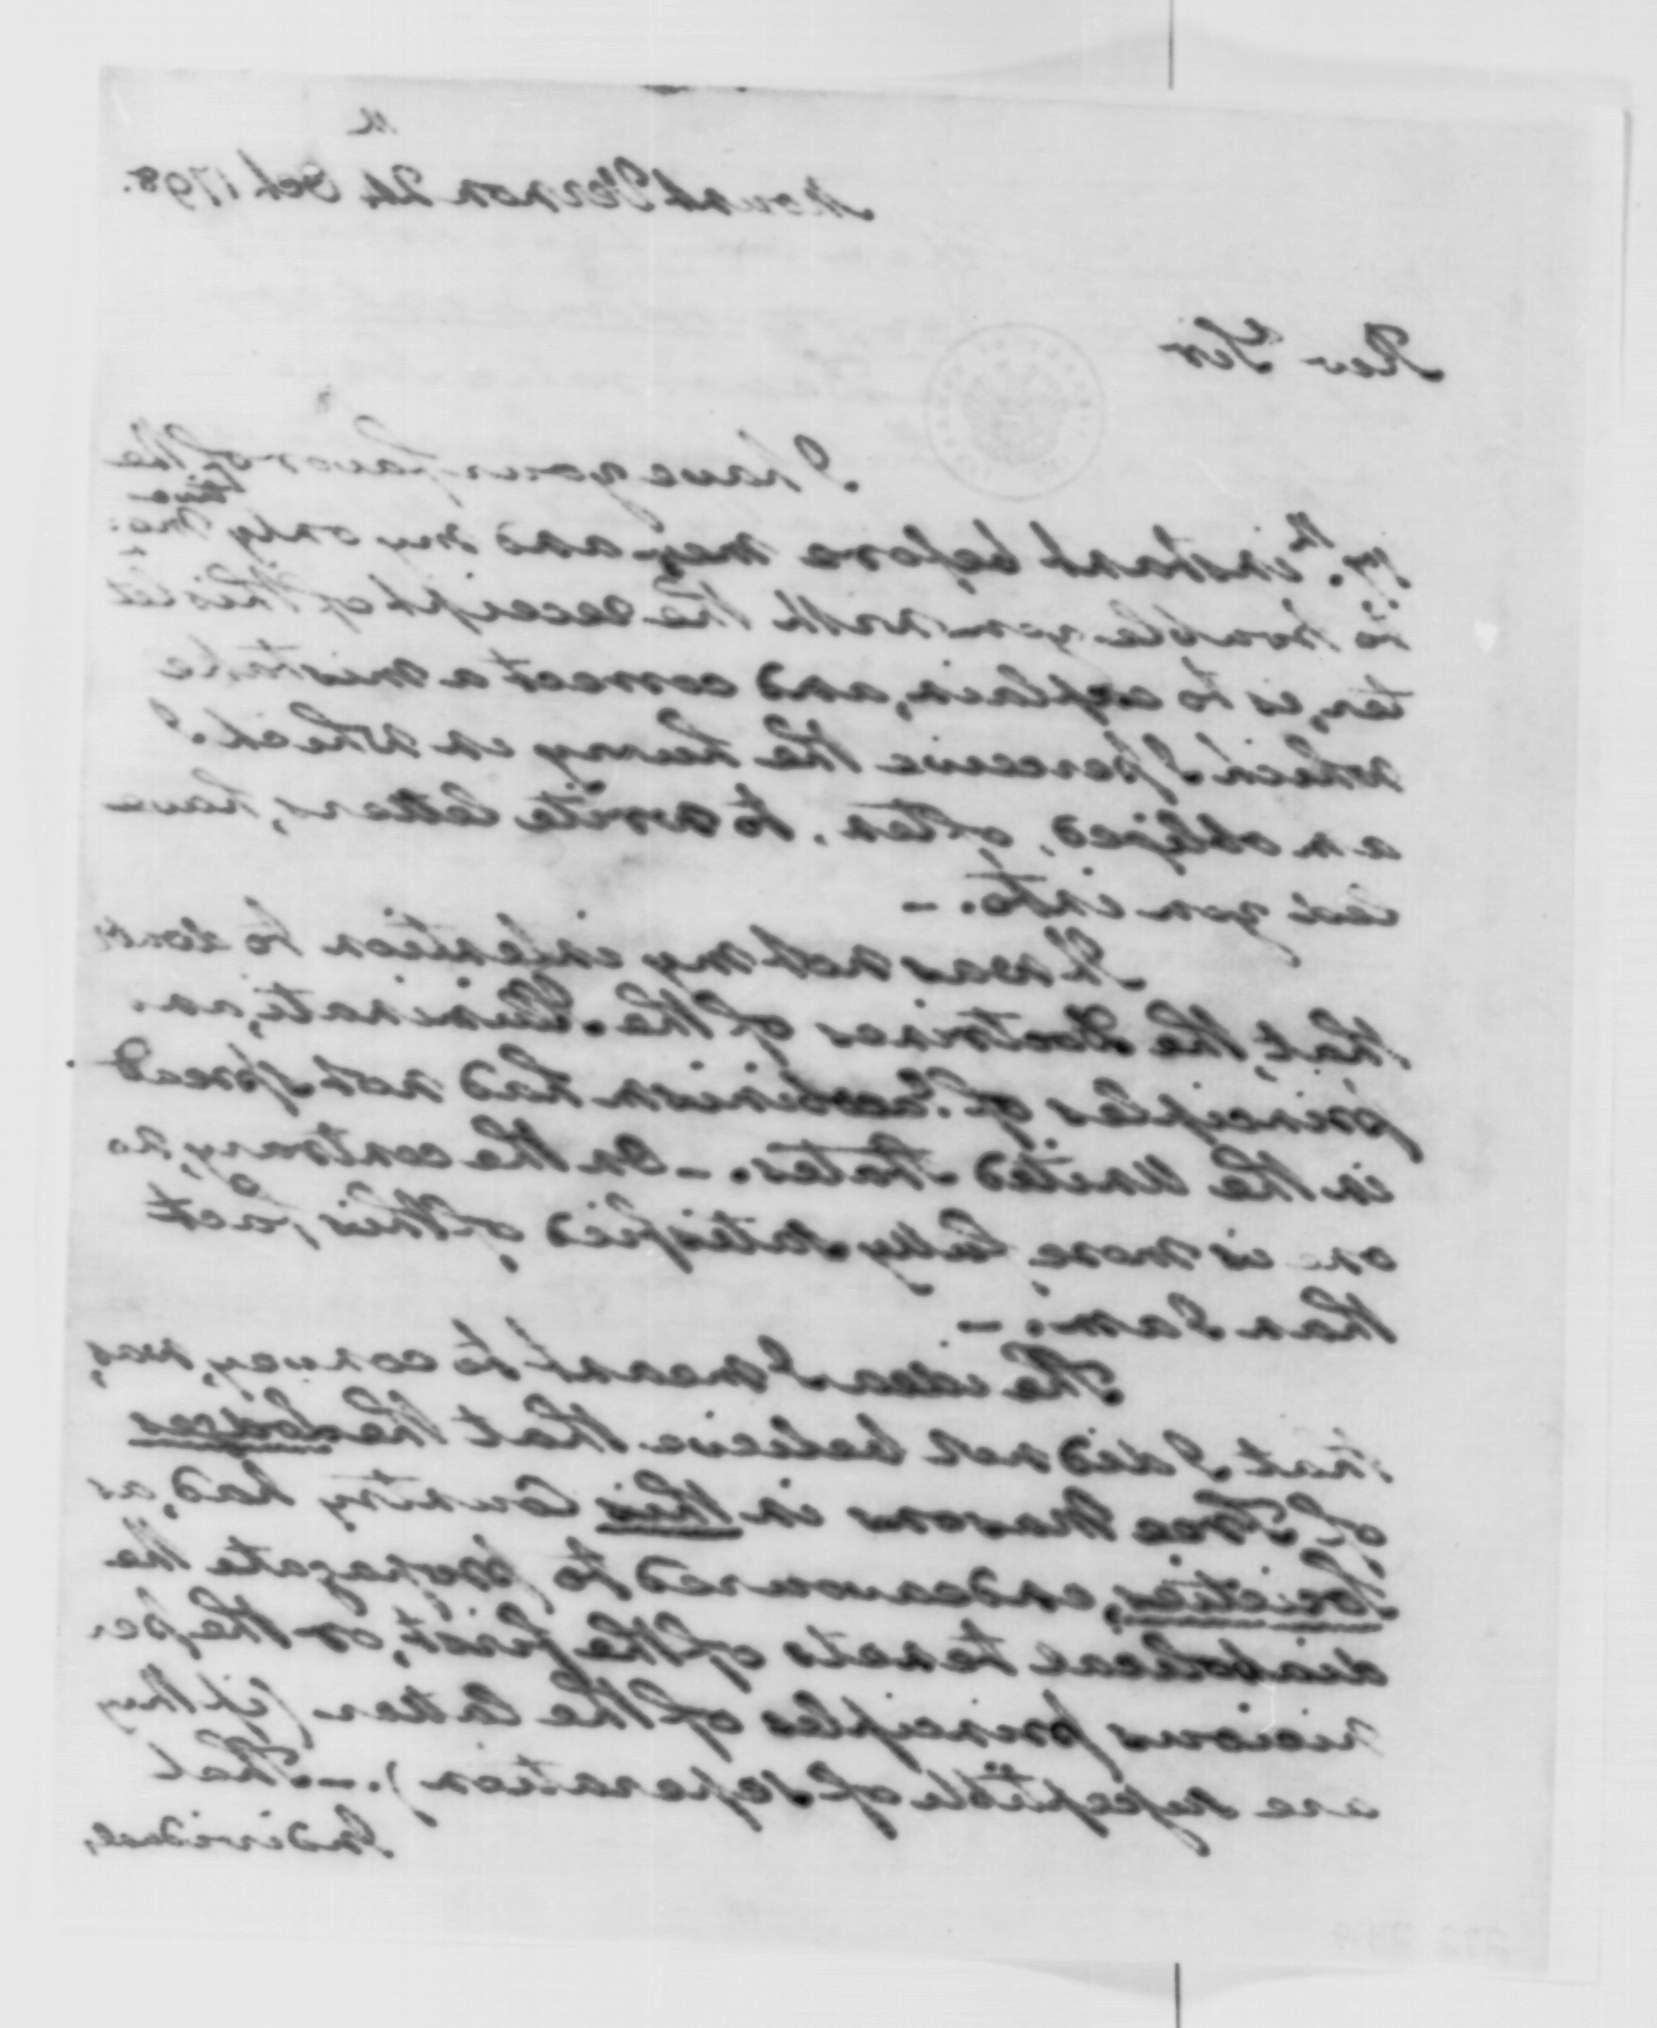 George Washington Illuminati Letter Oct 24th, 1798 - image 2 of 4